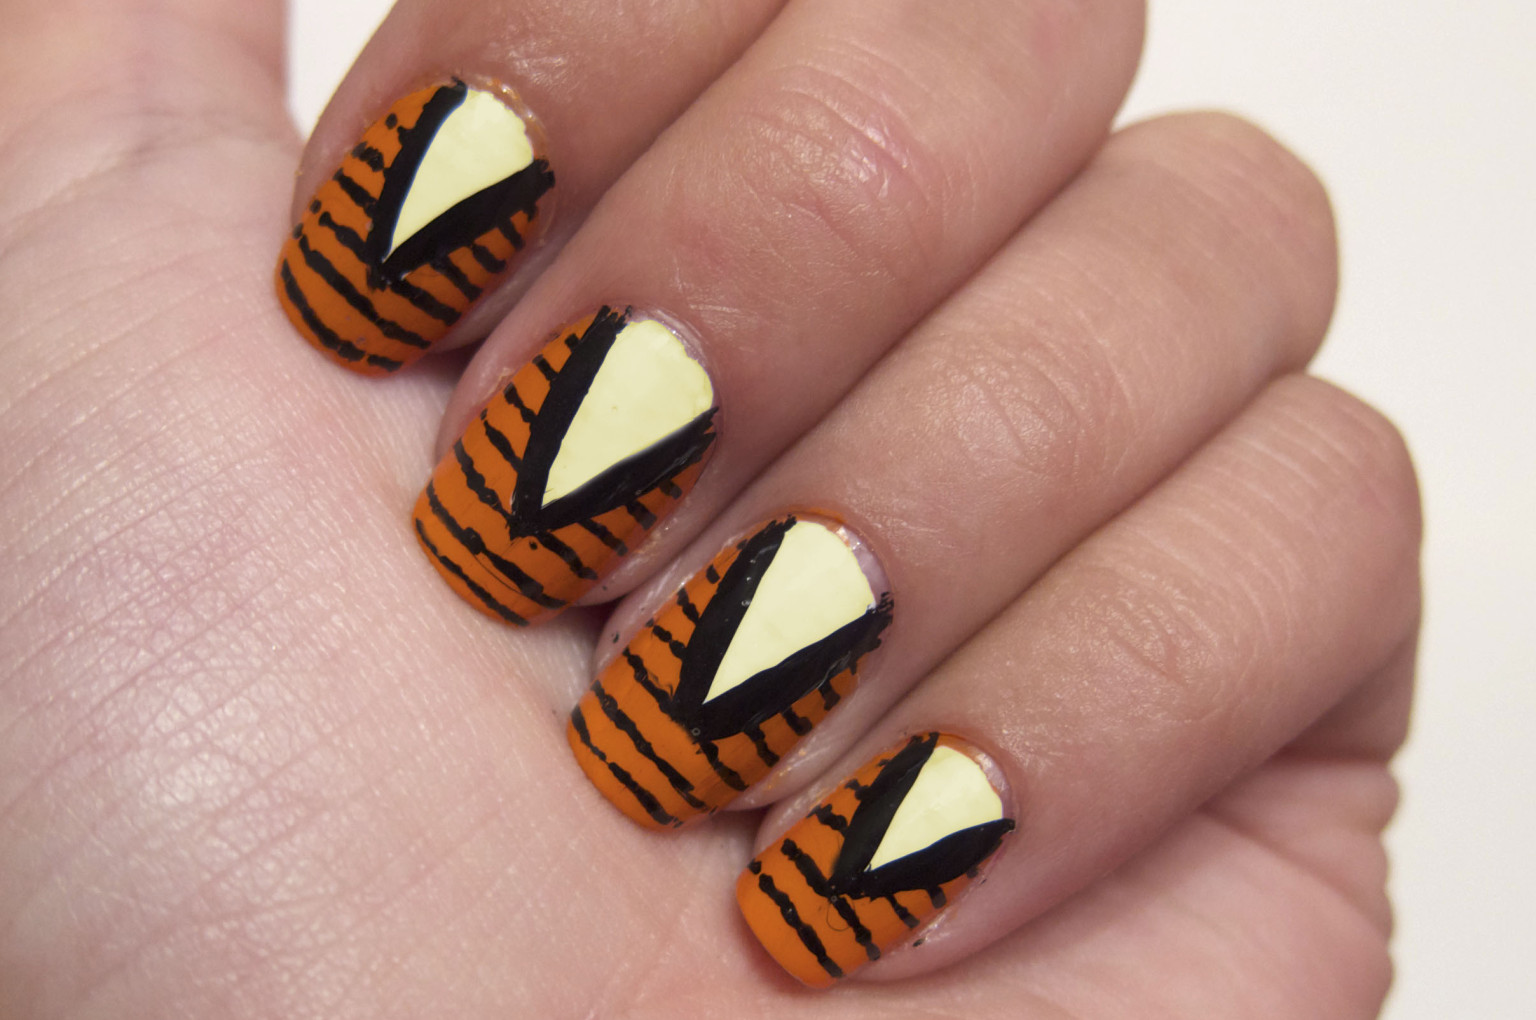 DIY Nail Art: Rodarte Fall 2012-Inspired Manicure (PHOTO) | HuffPost